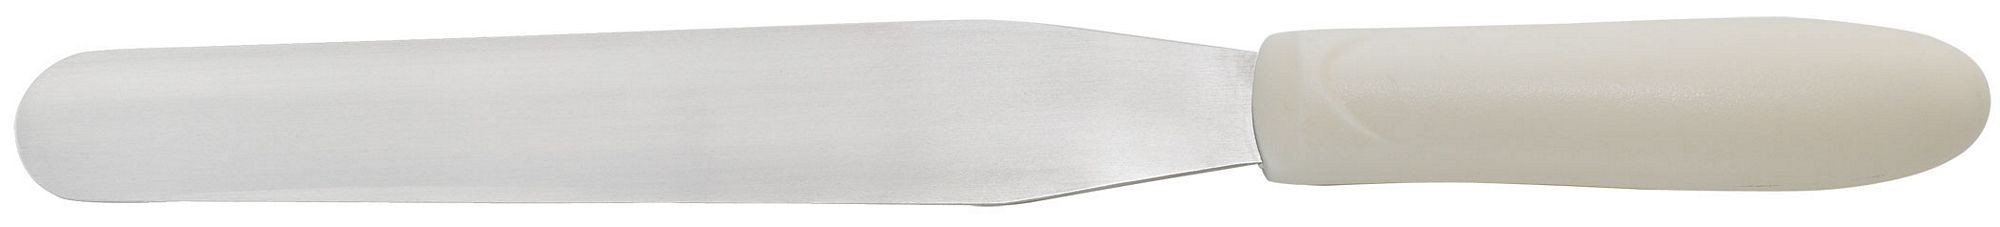 "Winco TWPS-7 Bakery Spatula 7 3/4"" Blade, White Polypropylene Handle"